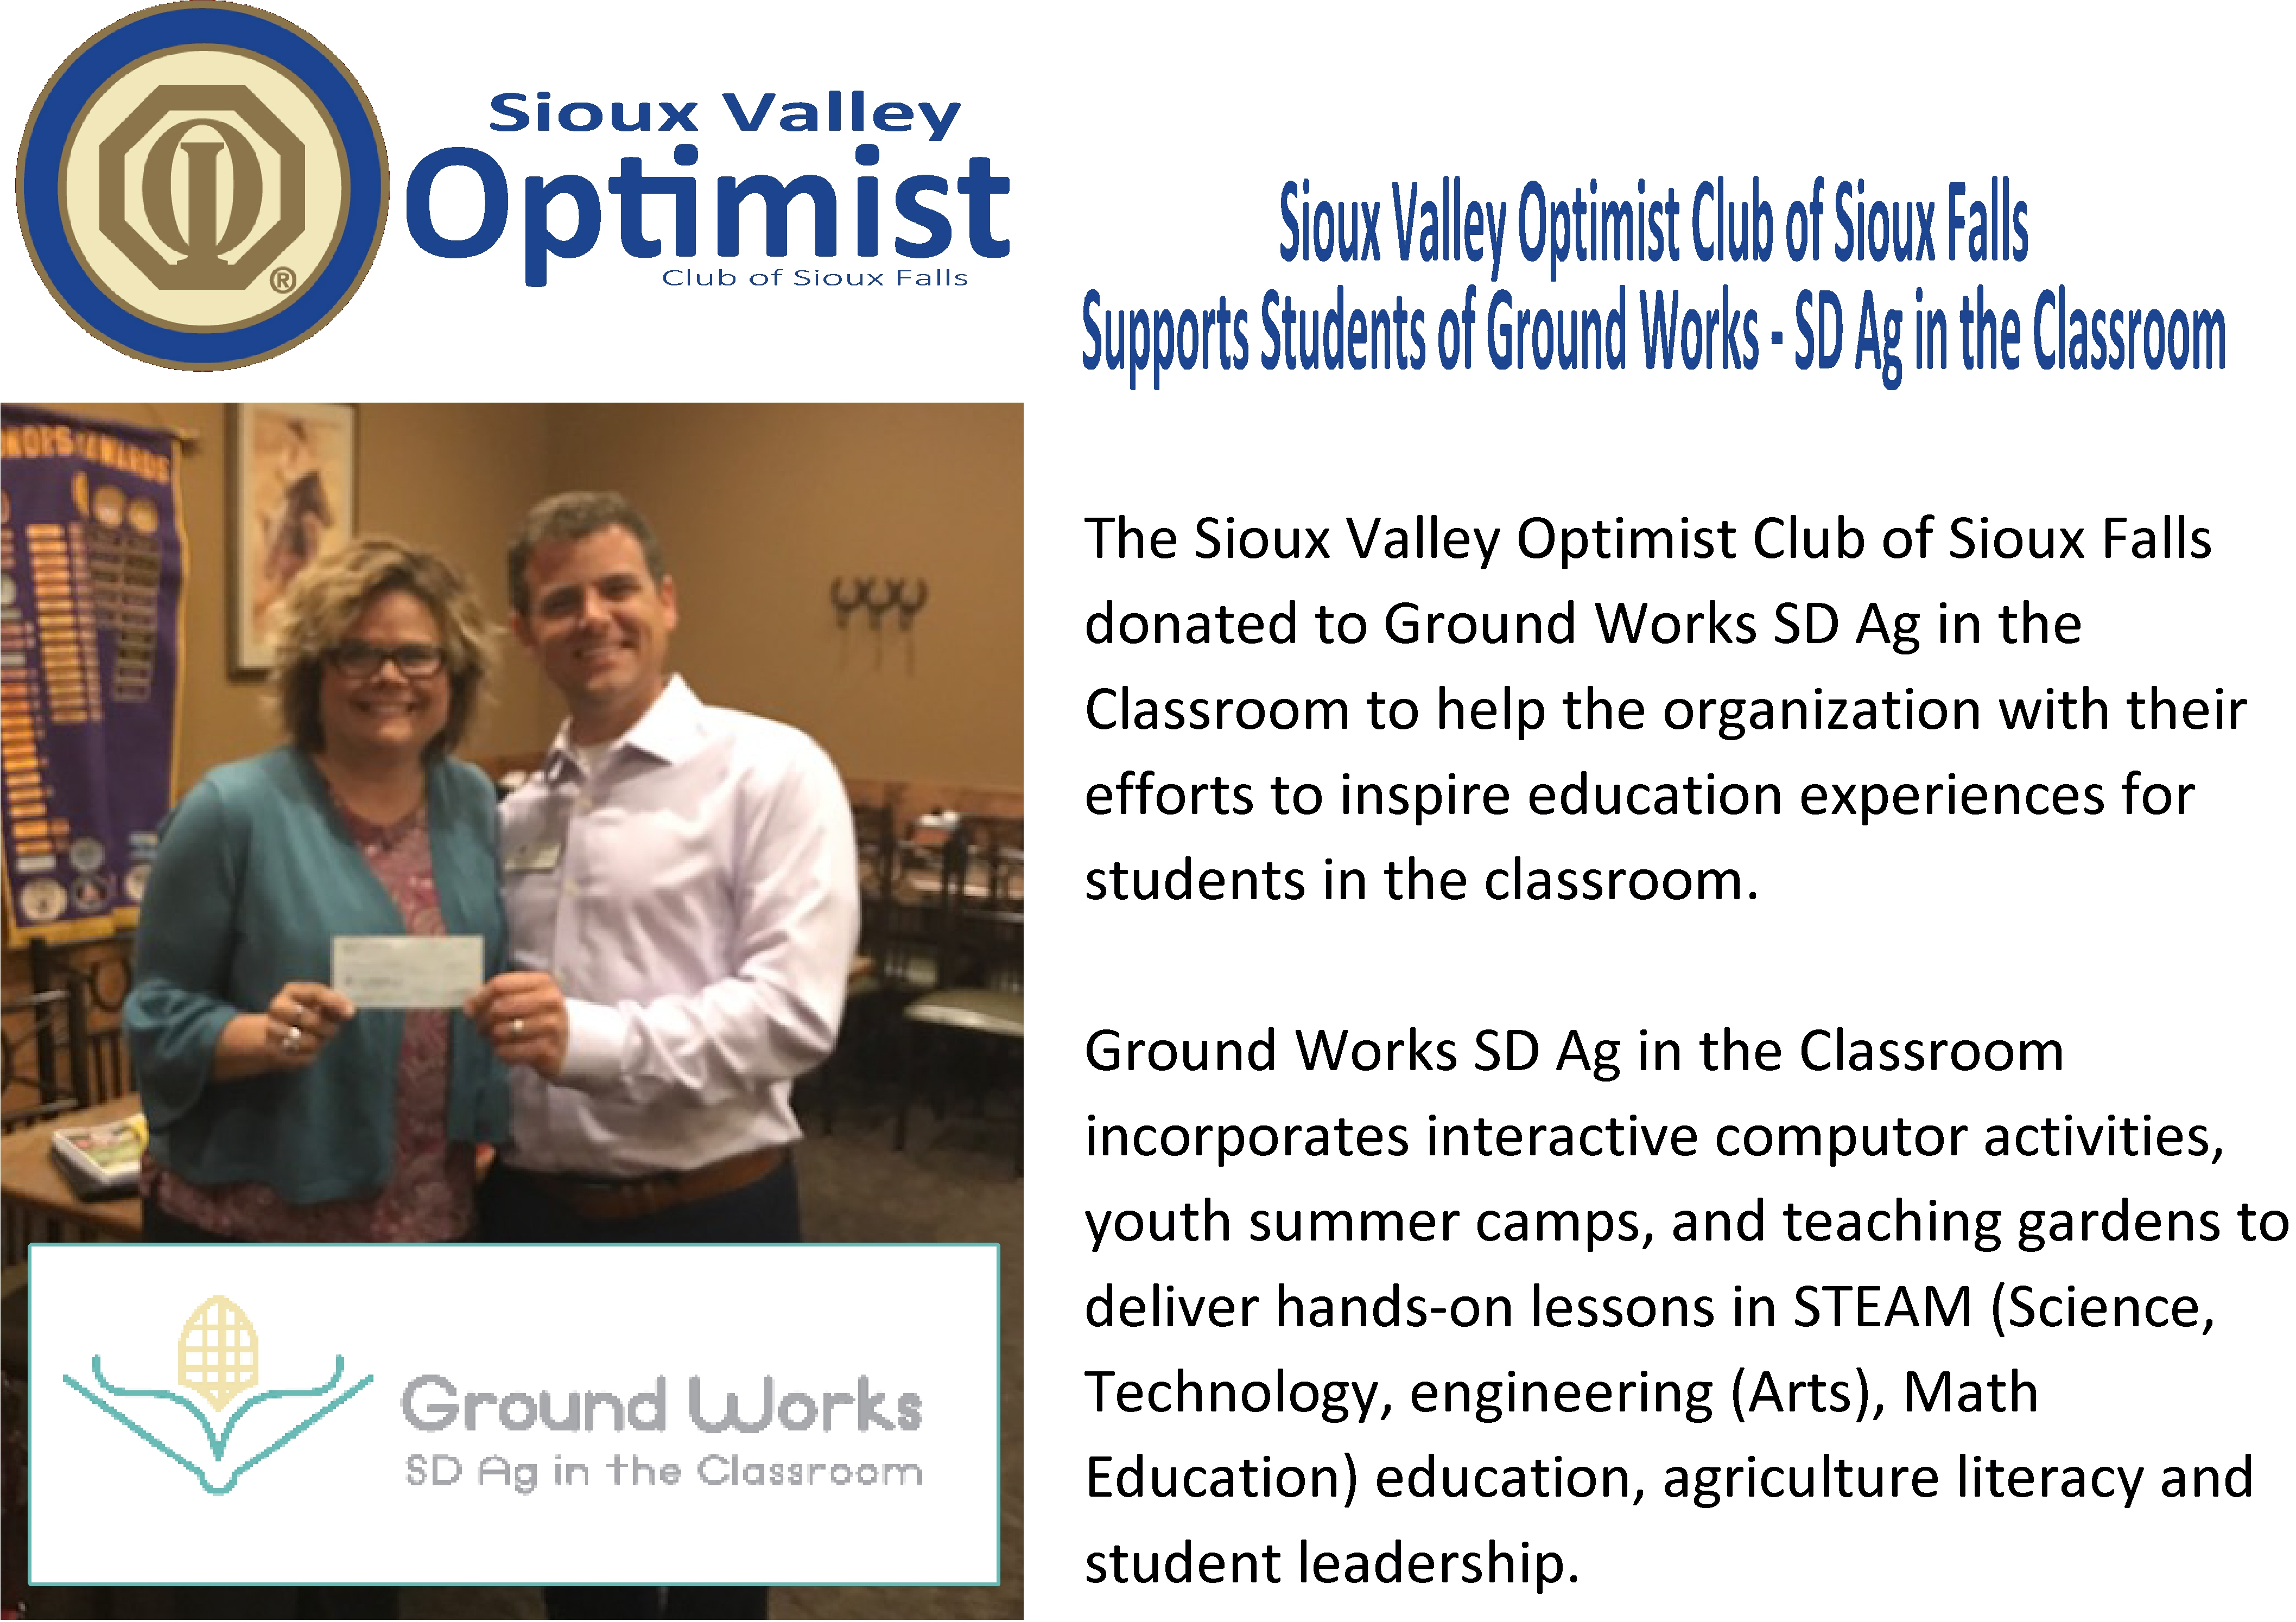 SVOC Donates to Ground Works/SD Ag in the Classroom  